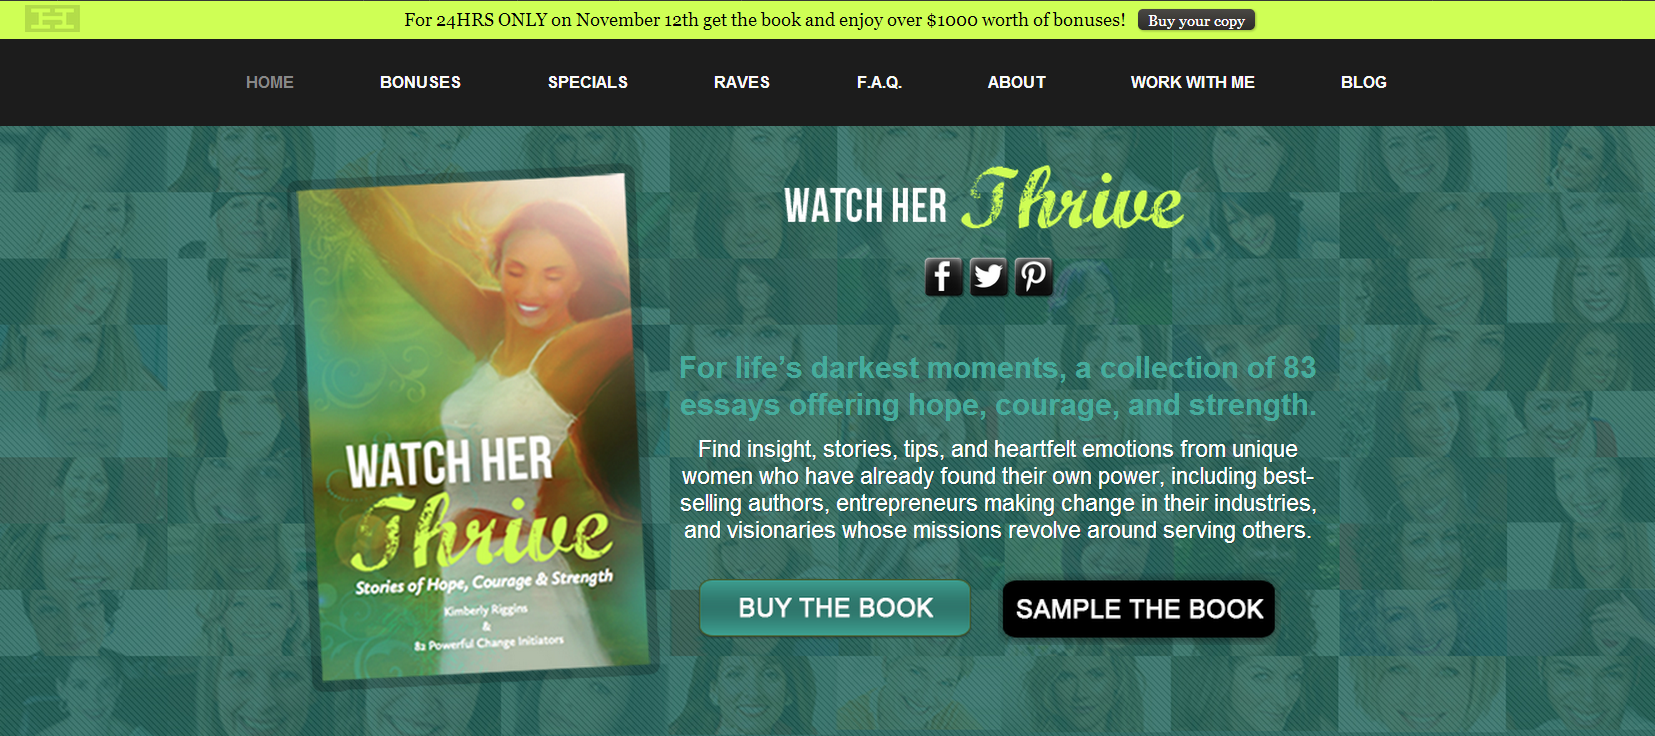 Today my client @Kimberly Riggins  published the book Watch Her Thrive and all the proceeds go to Women for Women International.   There is also over $1000 worth of book bonuses to grab if you purchase the Kindle edition of the book before midnight. Let's give back!  I am proud to be behind the design and code of the website for this life-changing book. Check it out: http://watchherthrivebook.com/